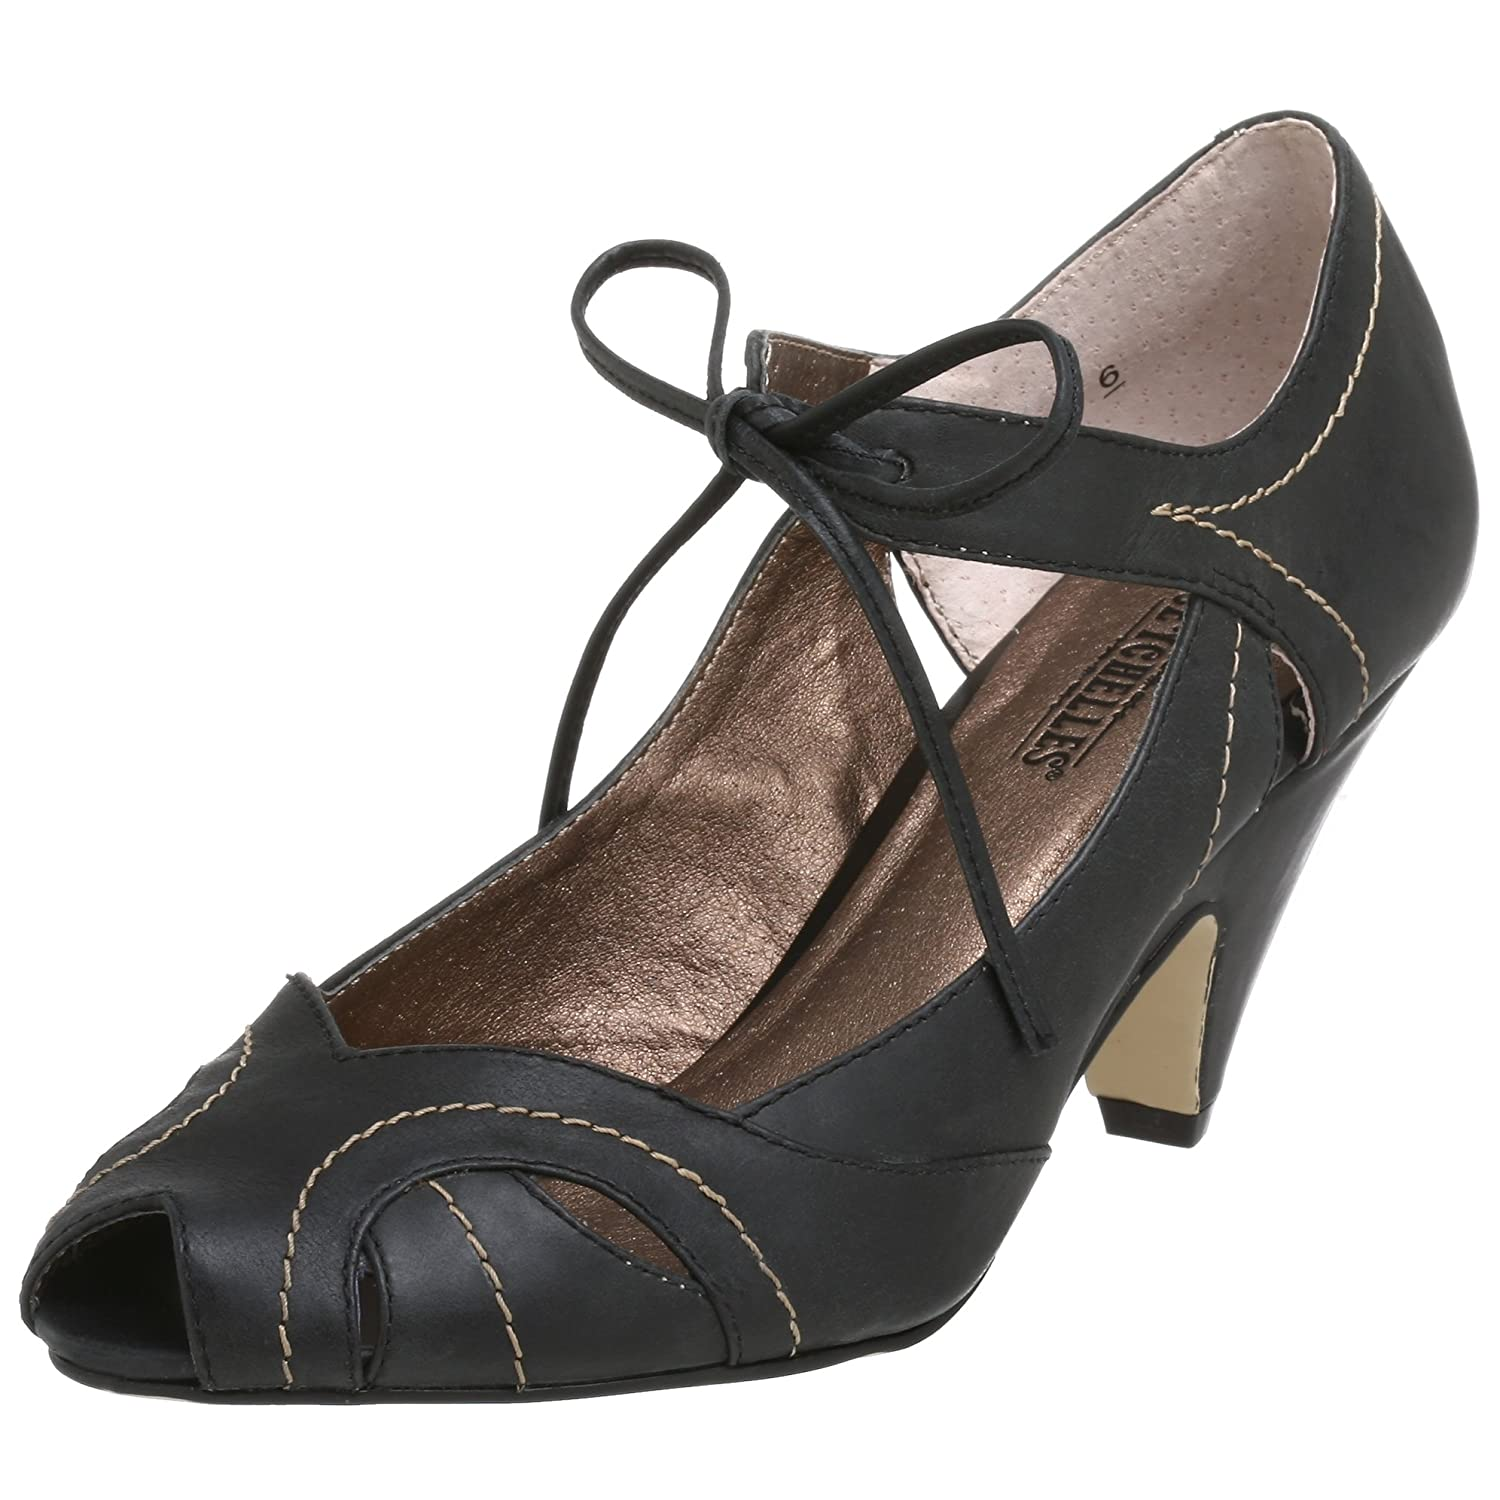 Seychelles Leading Lady Peep Toe Pump - Free Overnight Shipping & Return Shipping: Endless.com from endless.com